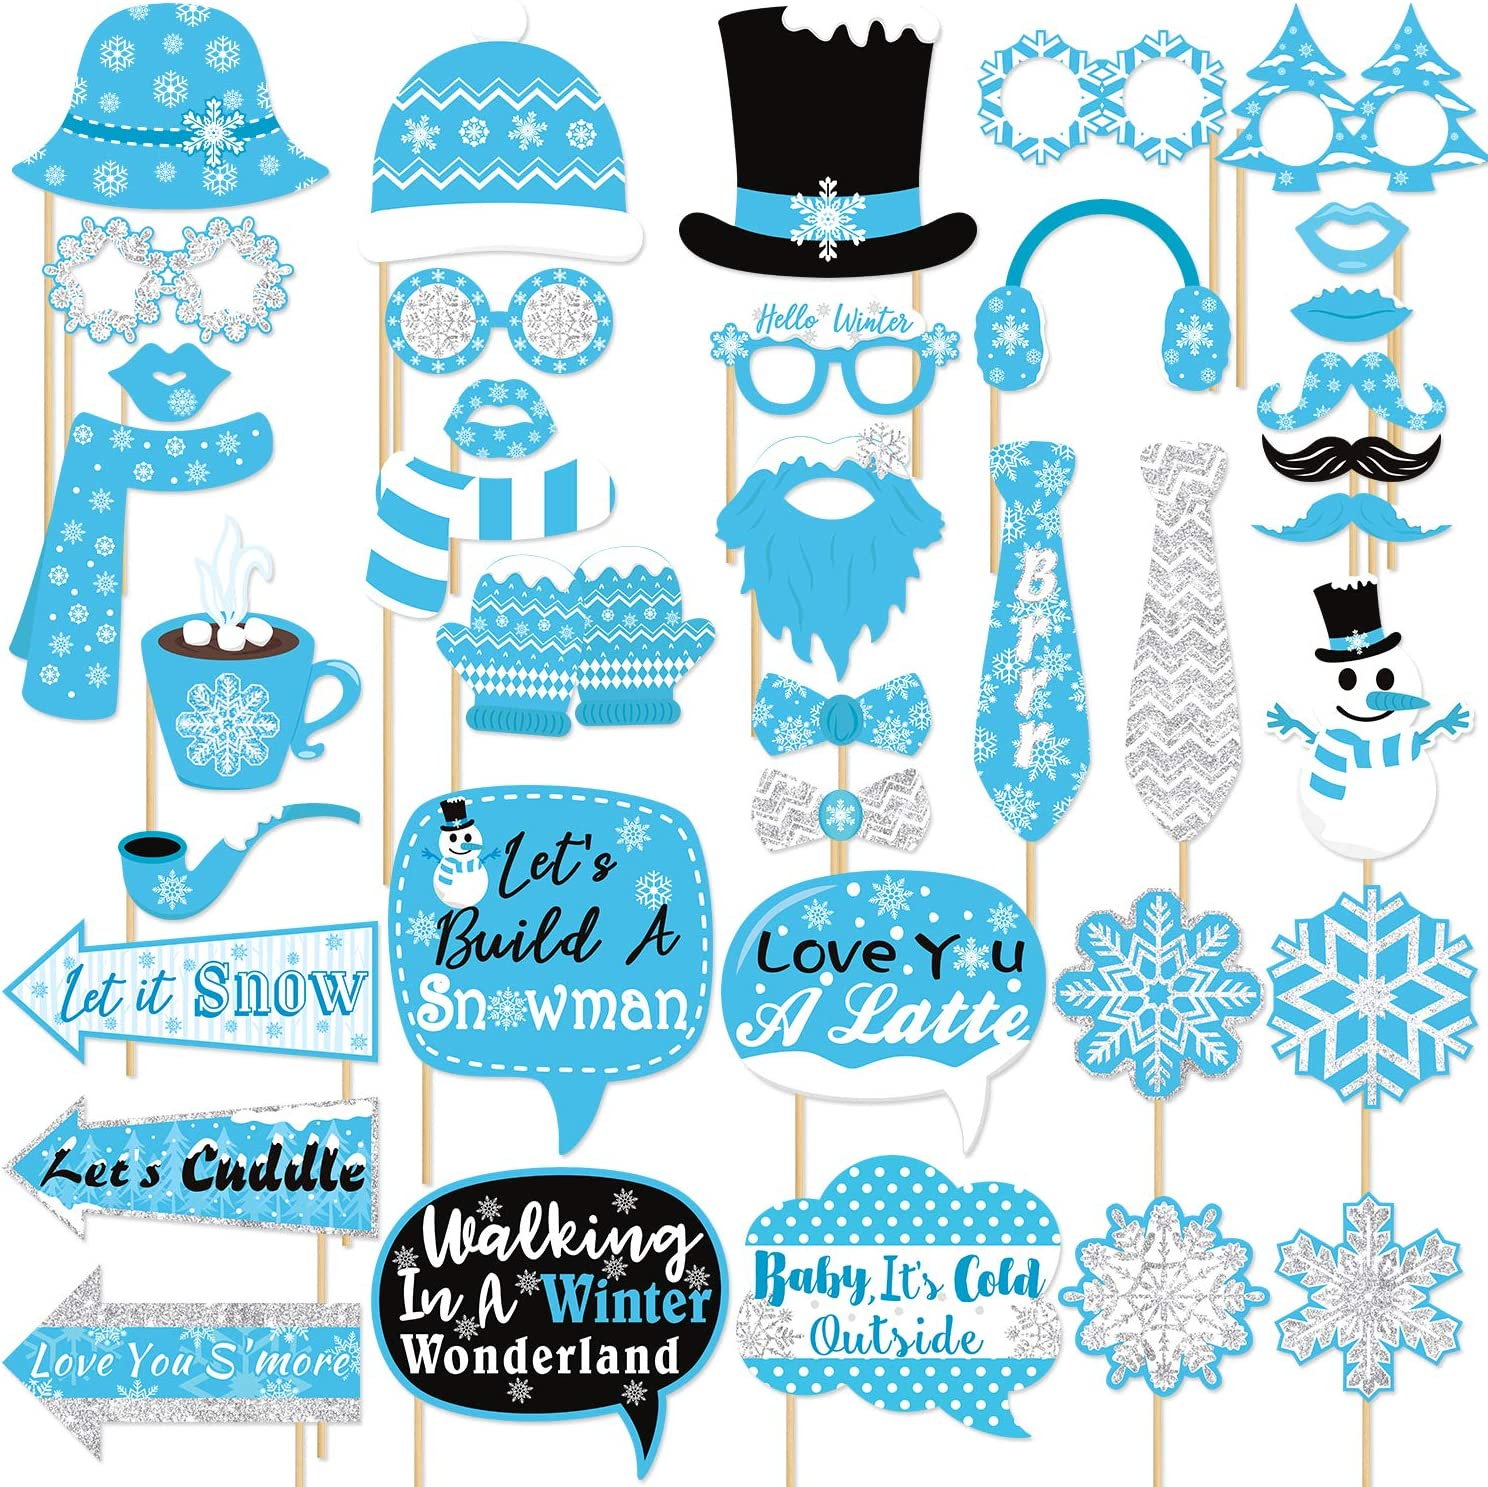 Snowflake Photo Booth Props Frozen Party Decorations Winter Wonderland Party Favor for Holiday Party, Christmas Party Supplies